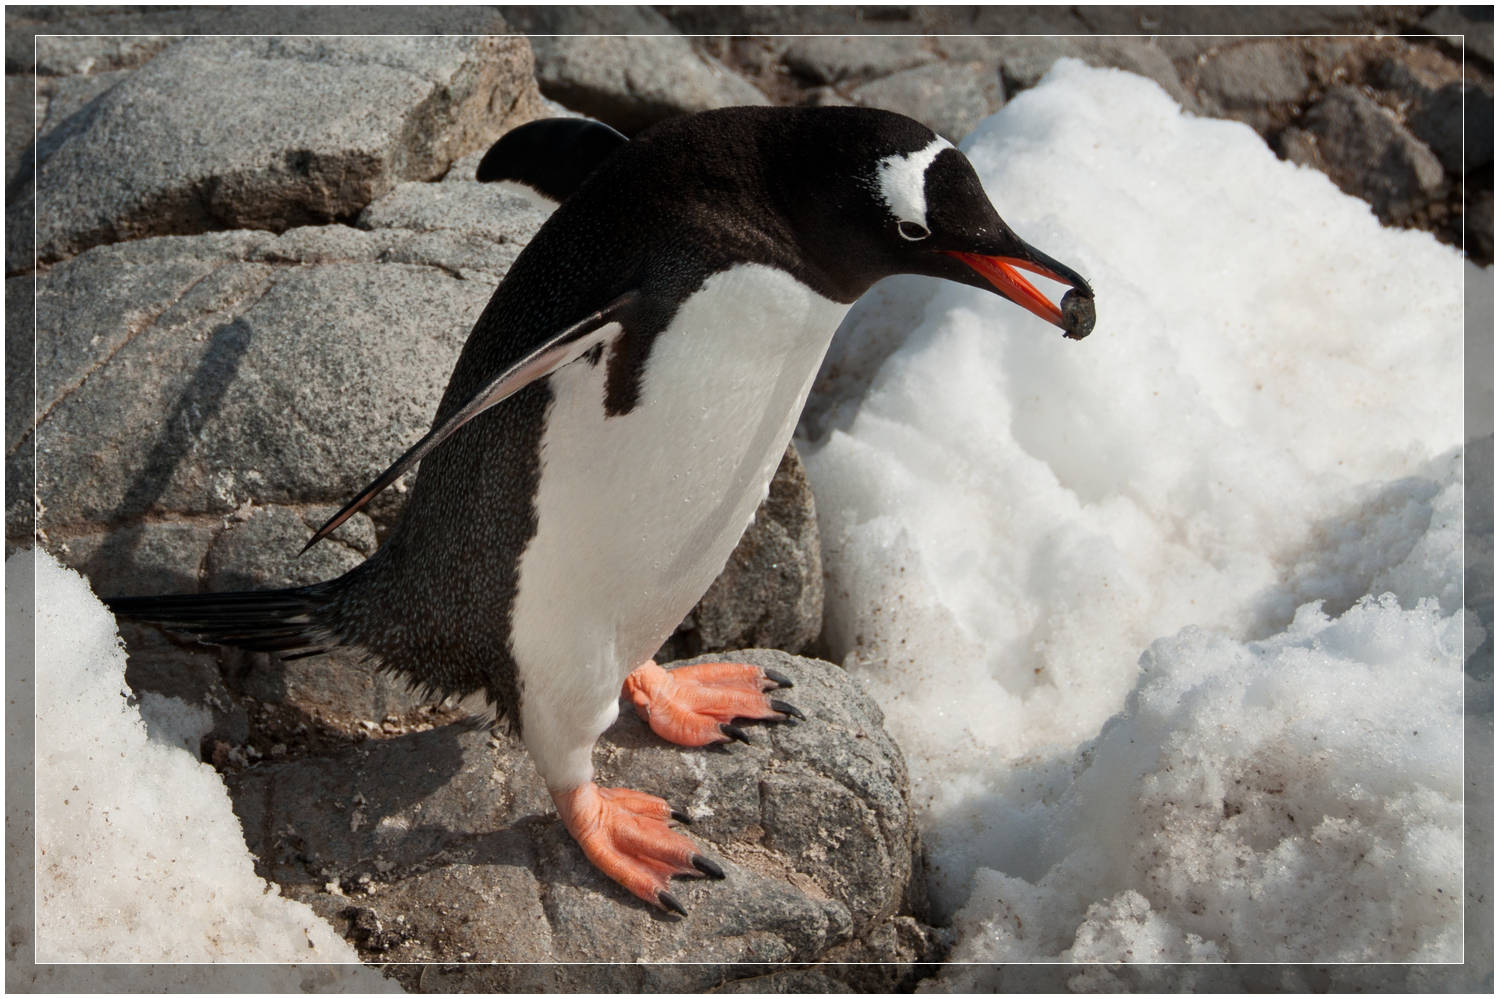 Penguin carrying a rock on Antarctica (c) Dustin Main 2010